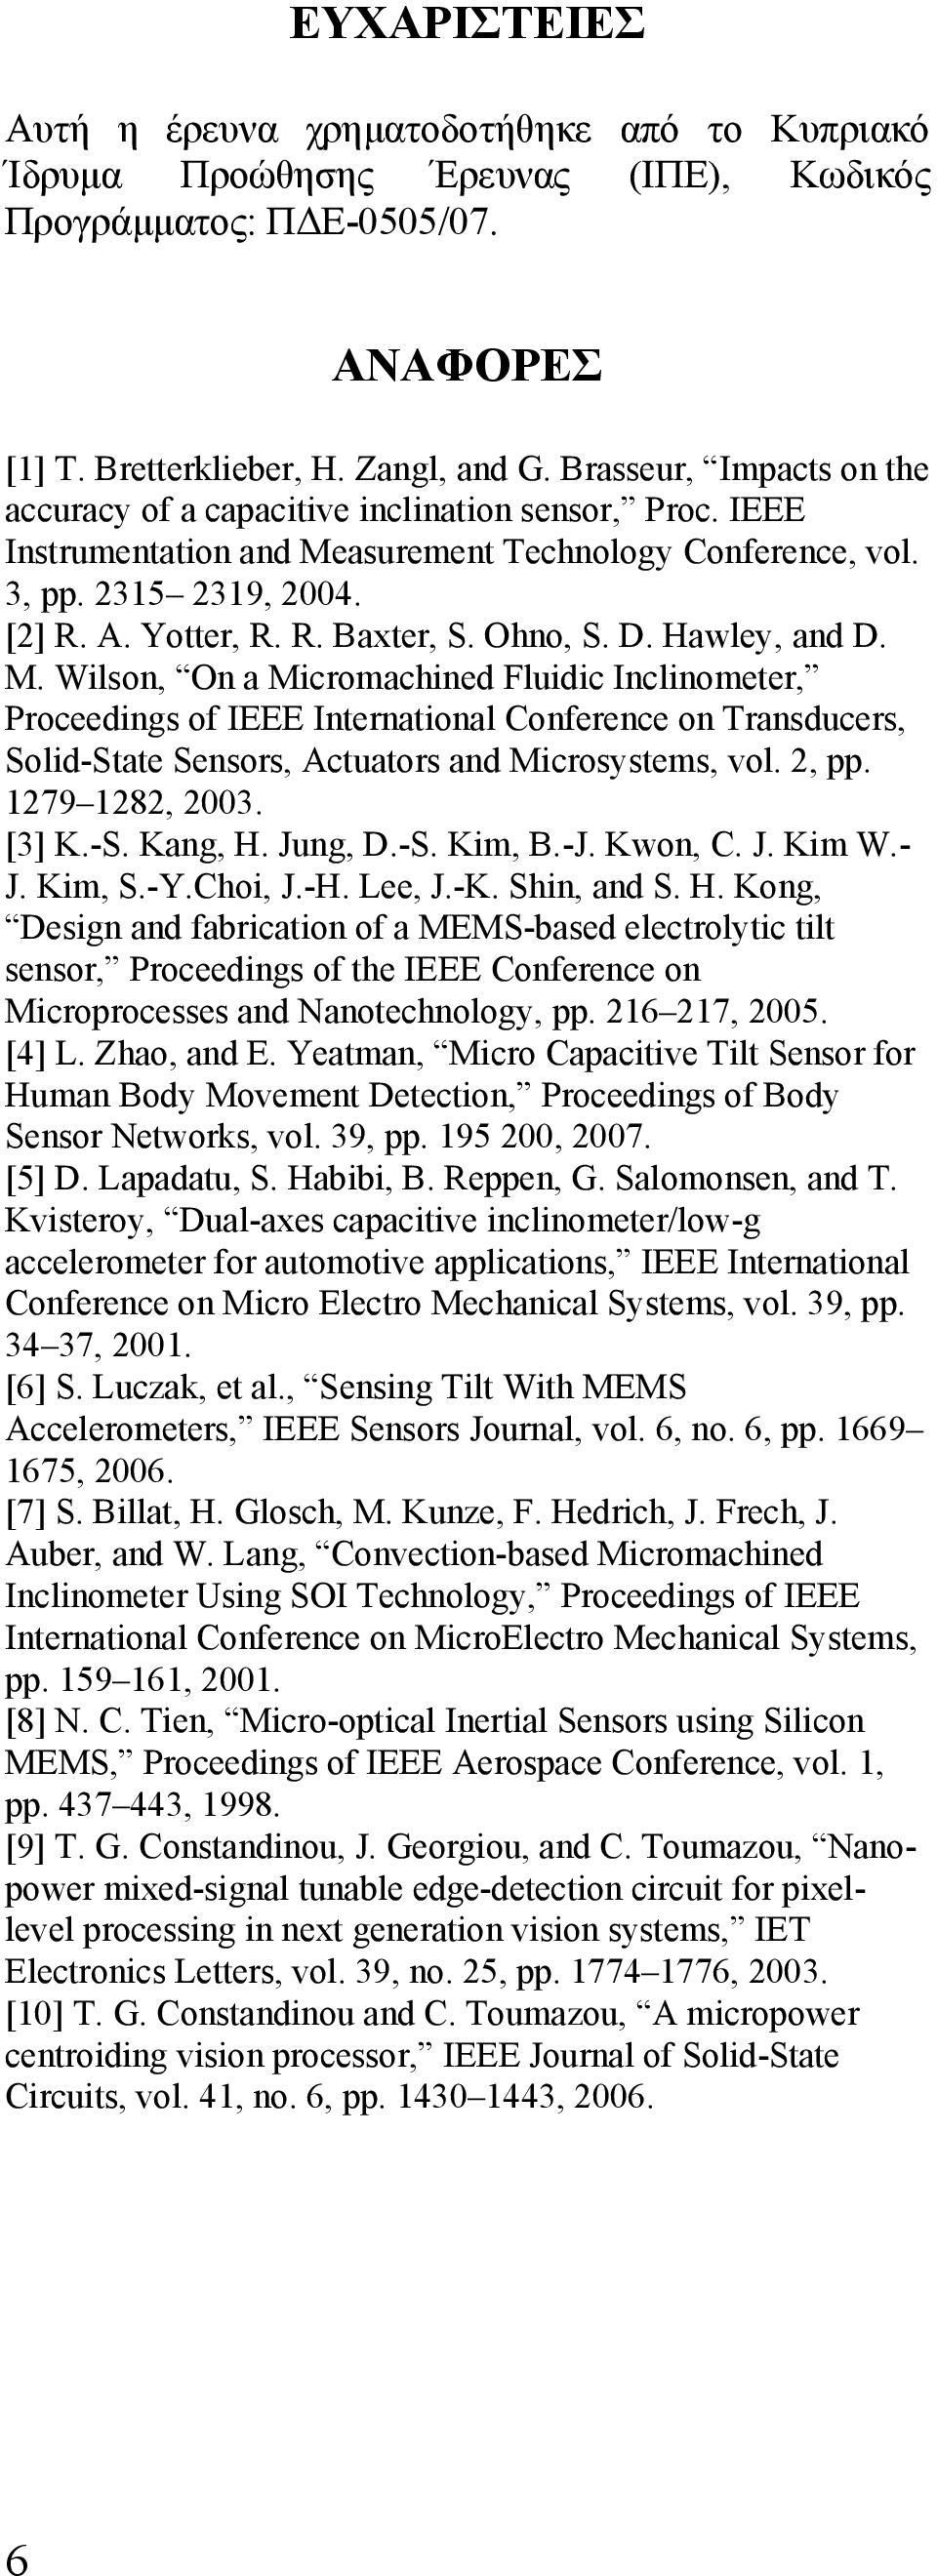 Ohno, S. D. Hawley, and D. M. Wilson, On a Micromachined Fluidic Inclinometer, Proceedings of IEEE International Conference on Transducers, Solid-State Sensors, Actuators and Microsystems, vol. 2, pp.